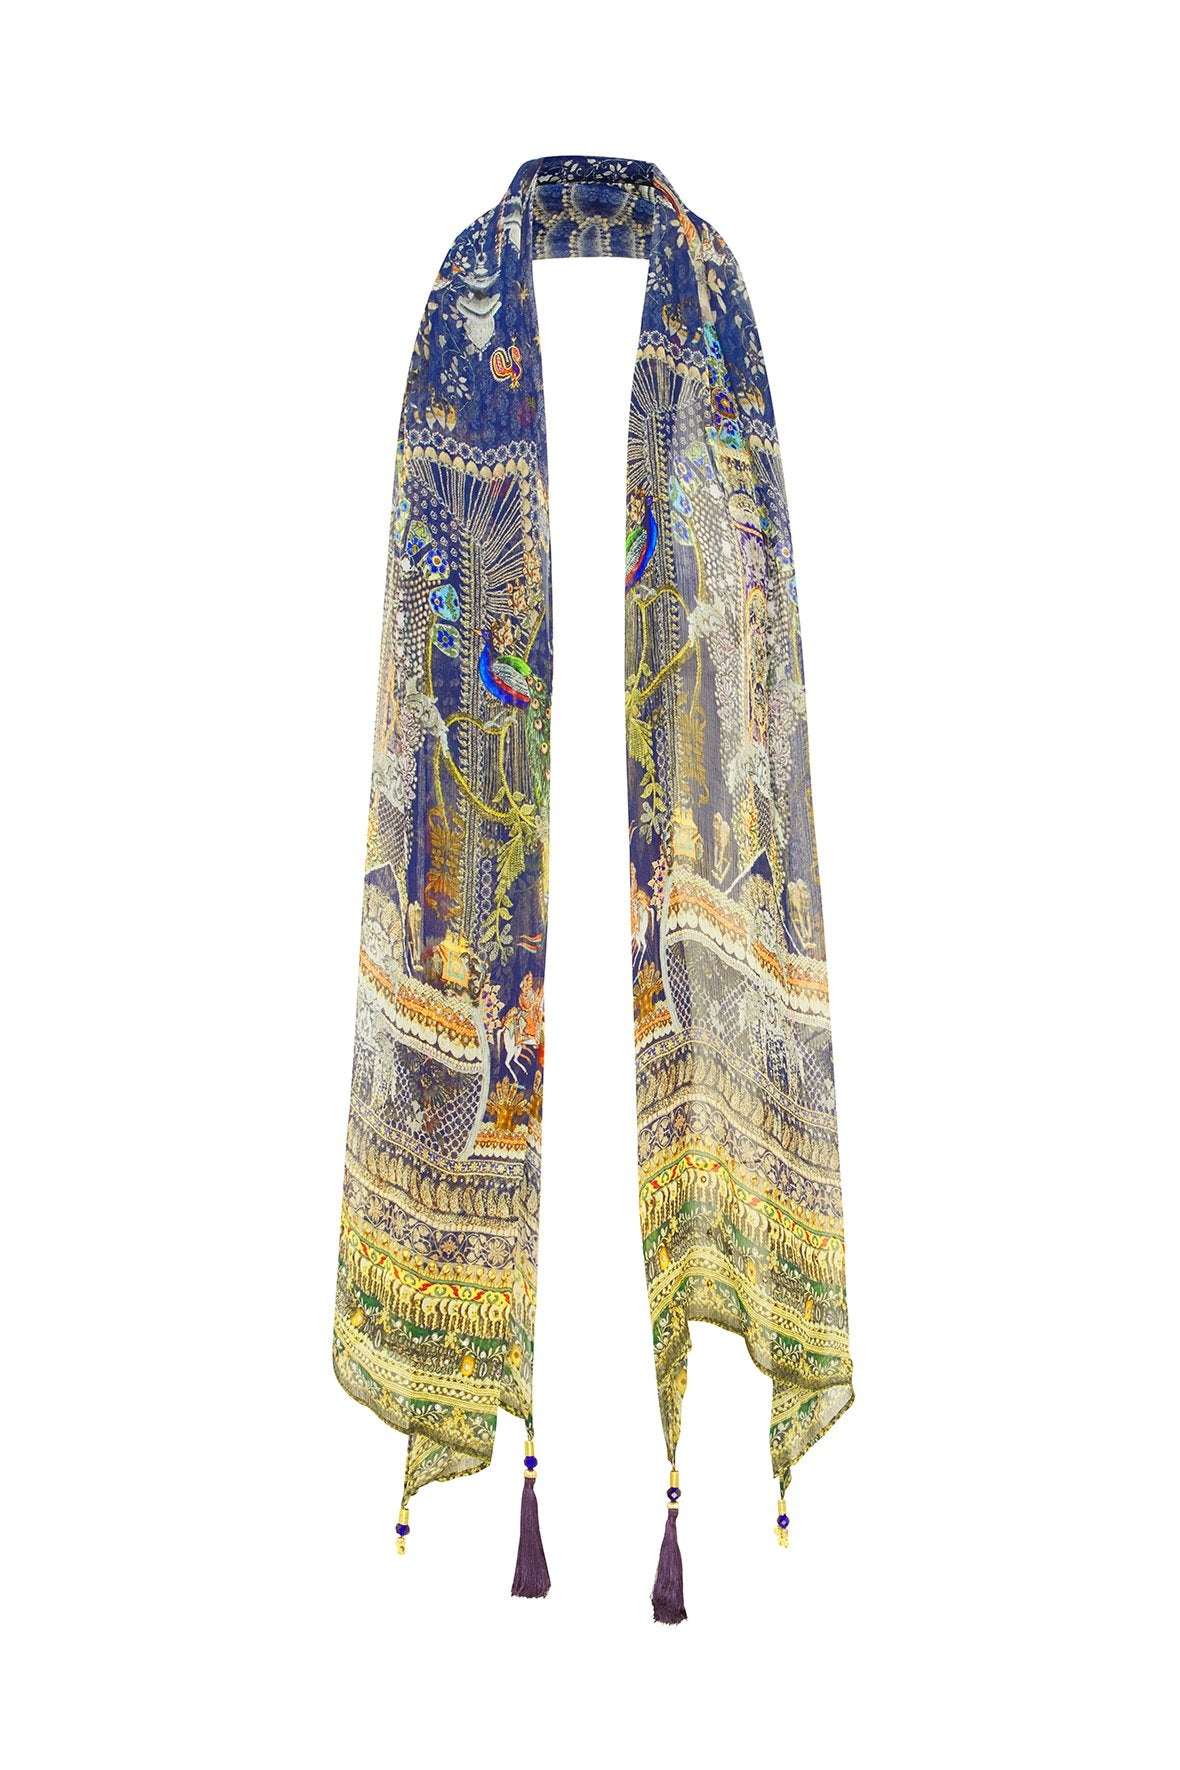 CHILDREN OF THE WORLD LONG SCARF